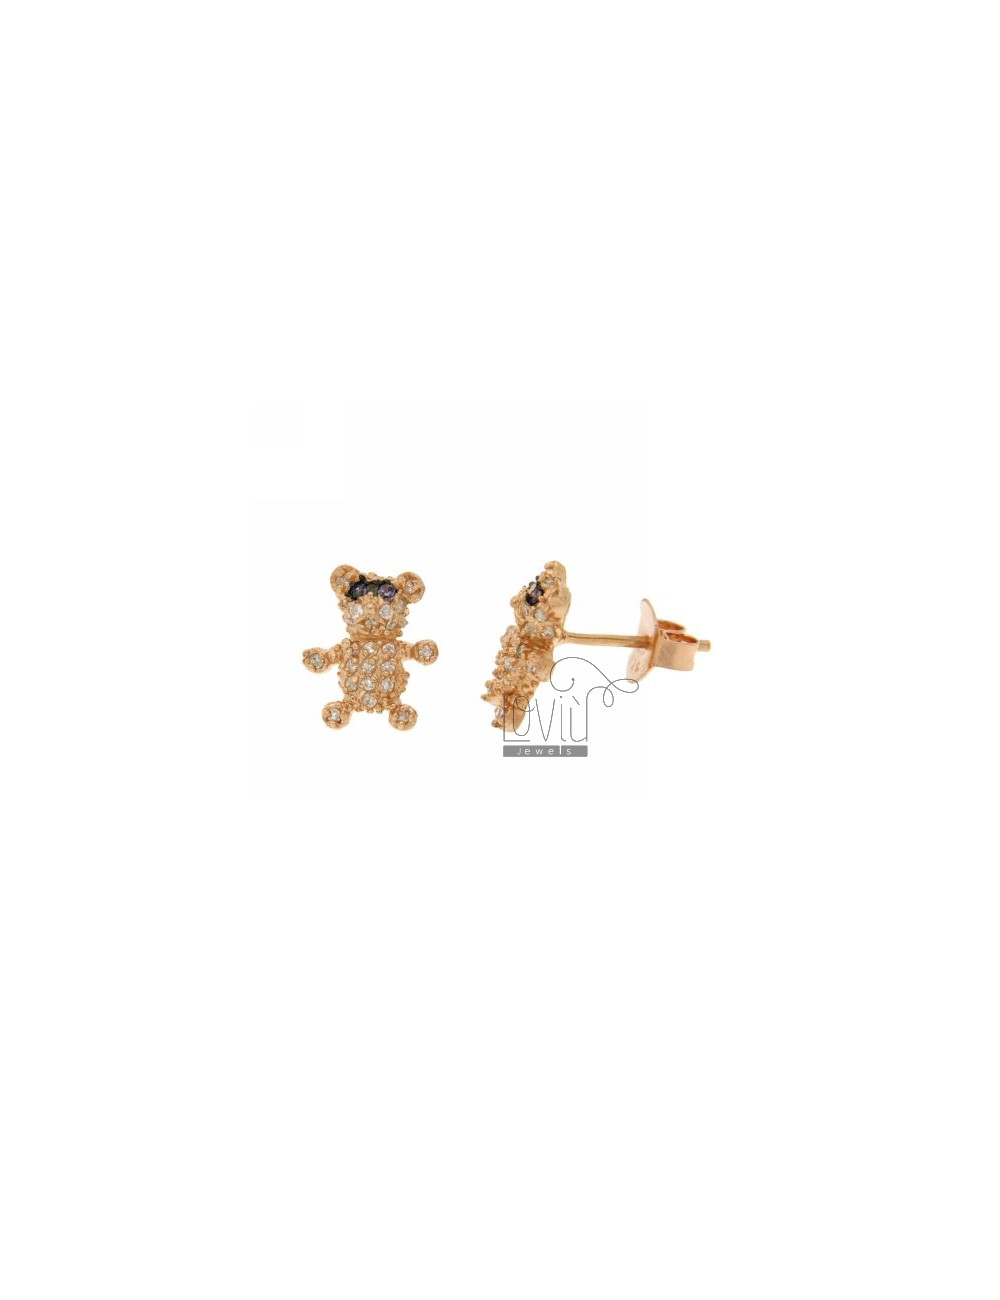 LOBO WITH A BEAR EARRINGS PAVE &39OF ZIRCONIA IN ROSE GOLD PLATED AG TIT 925